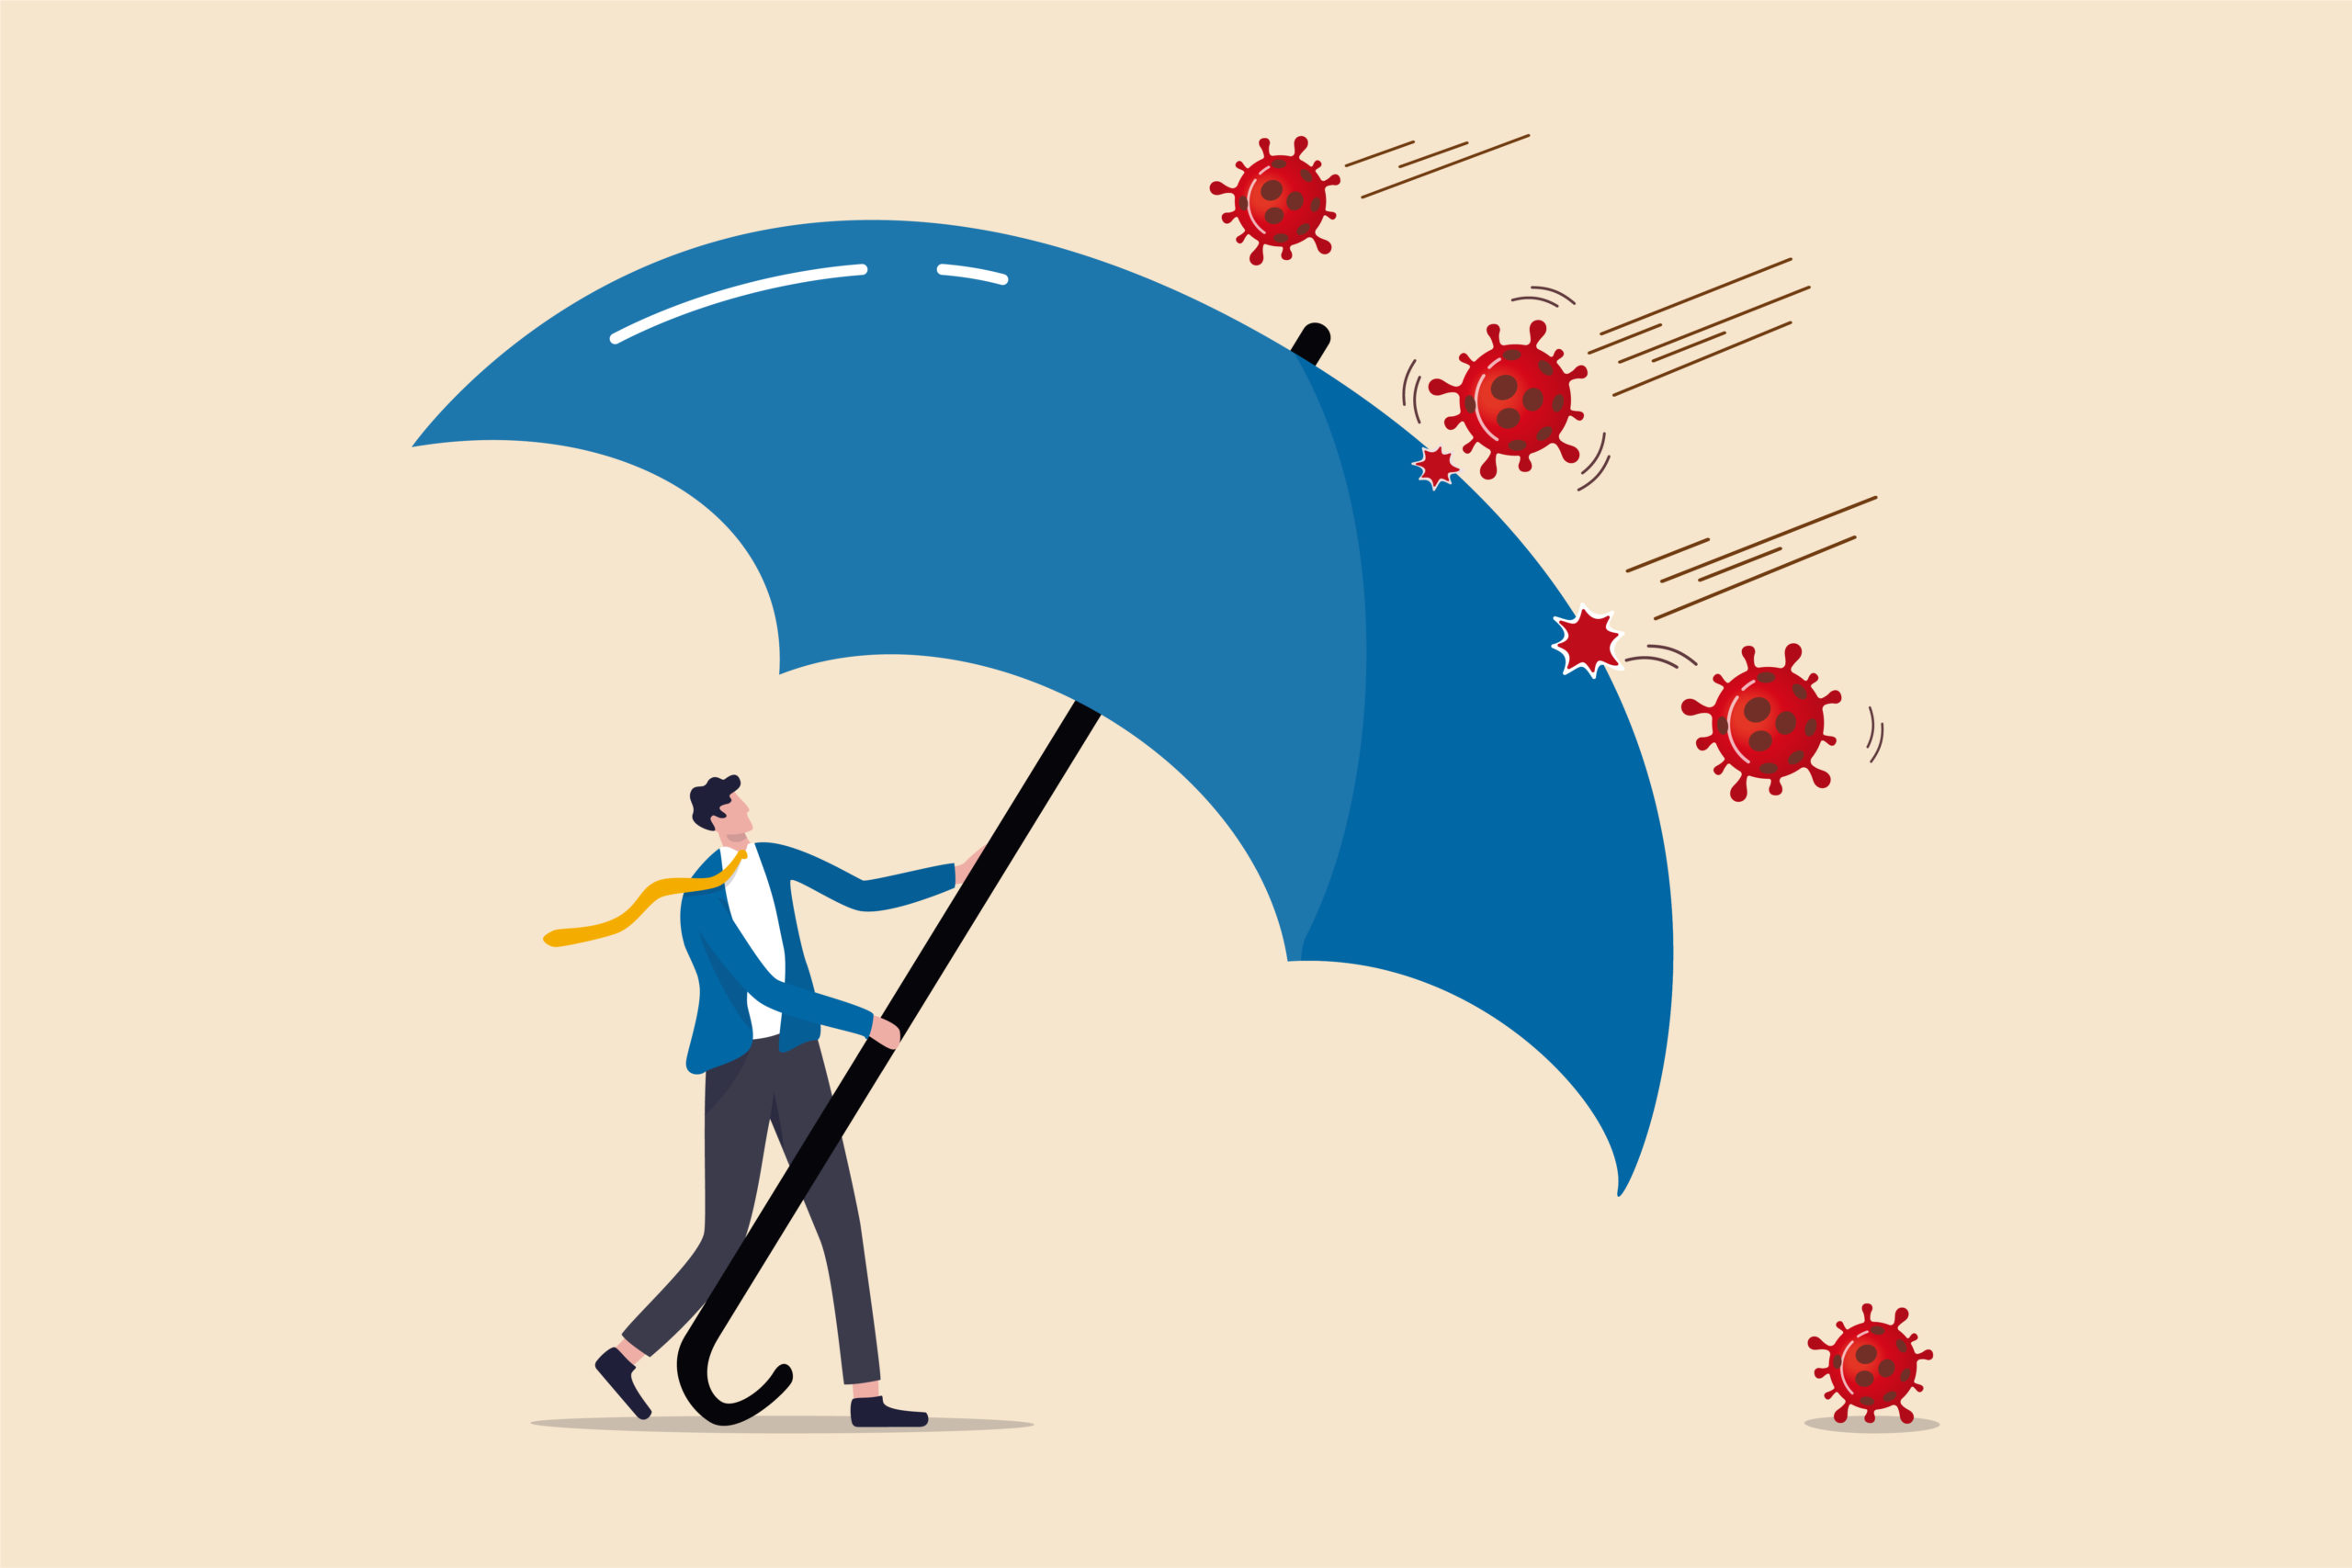 man holding umbrella depicting Further Economic Support announced